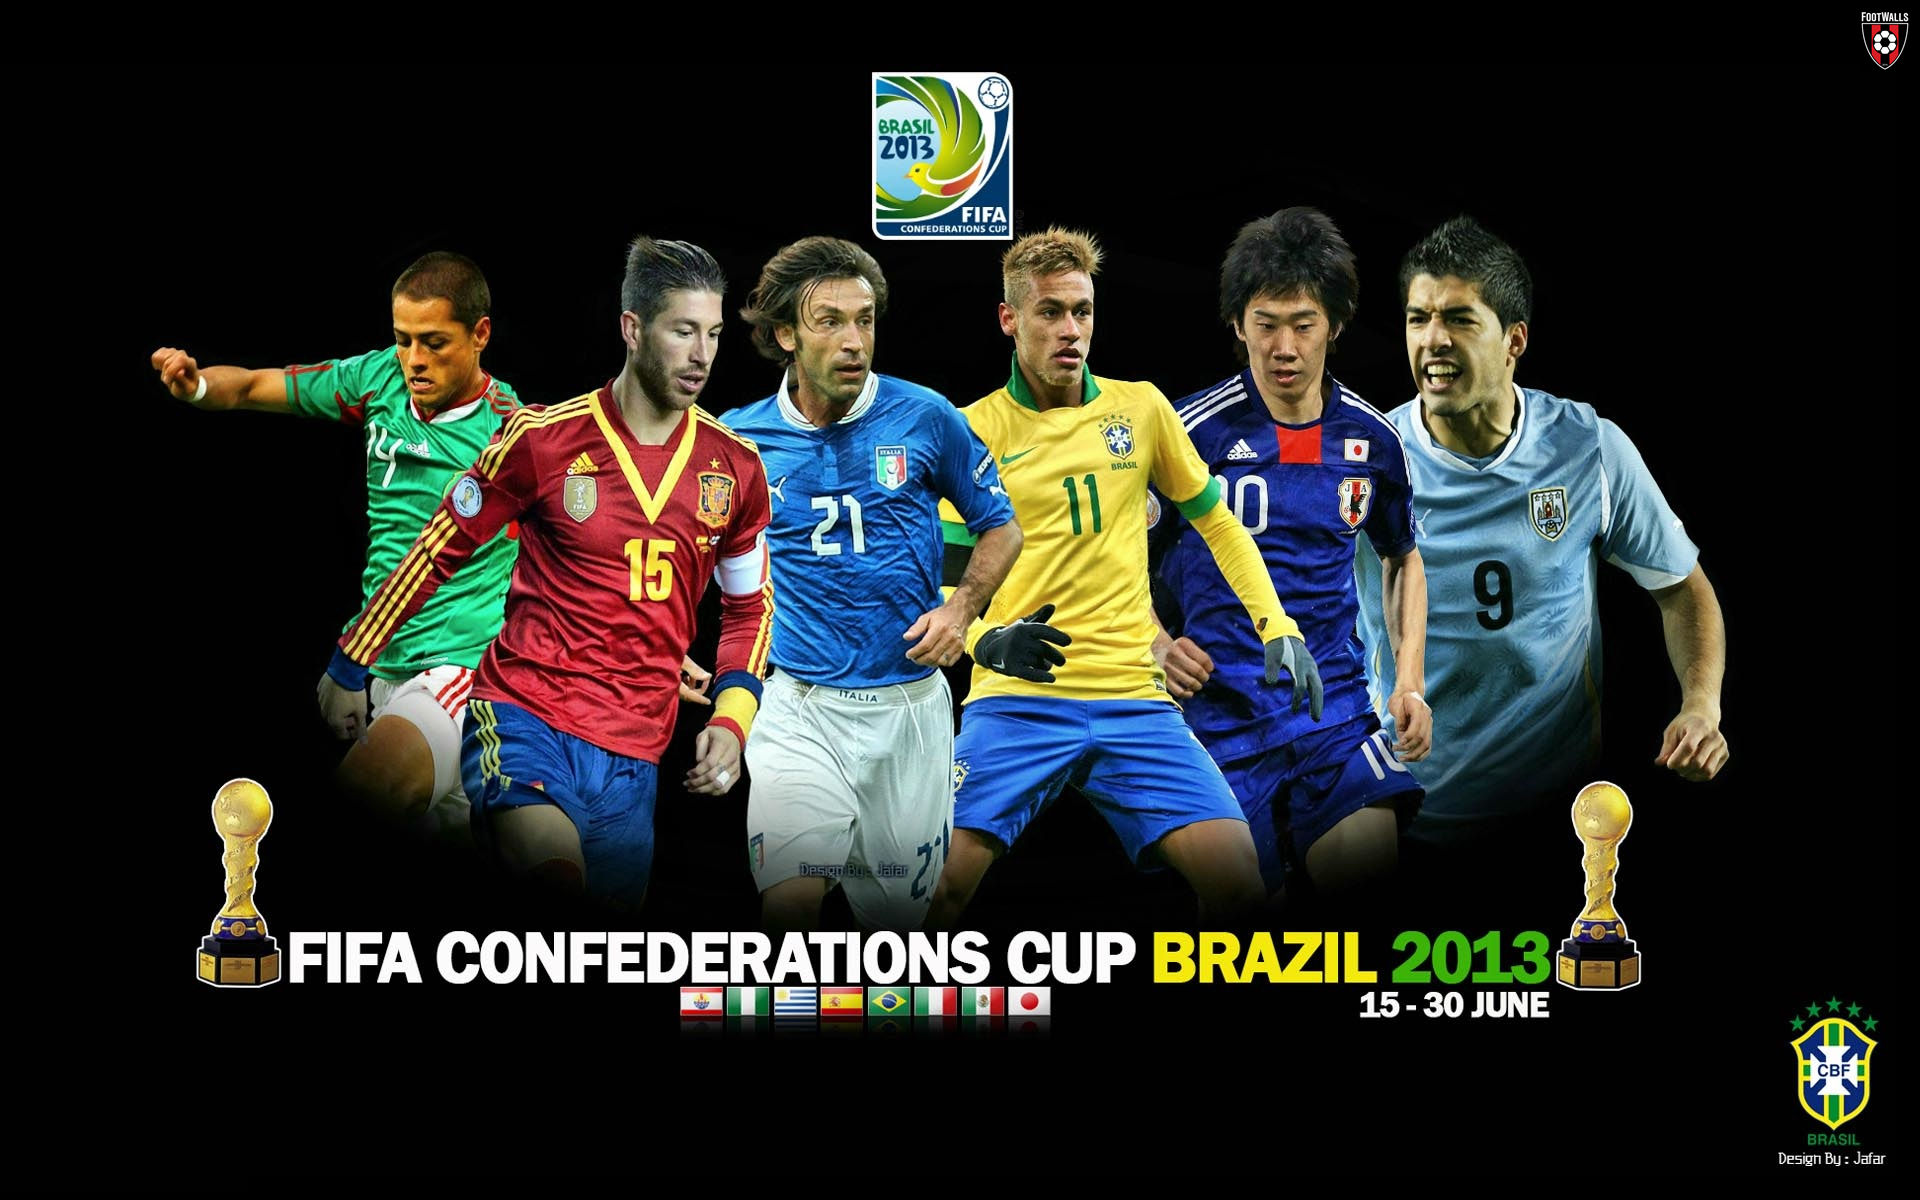 F I F A Confederations Cup Wallpaper